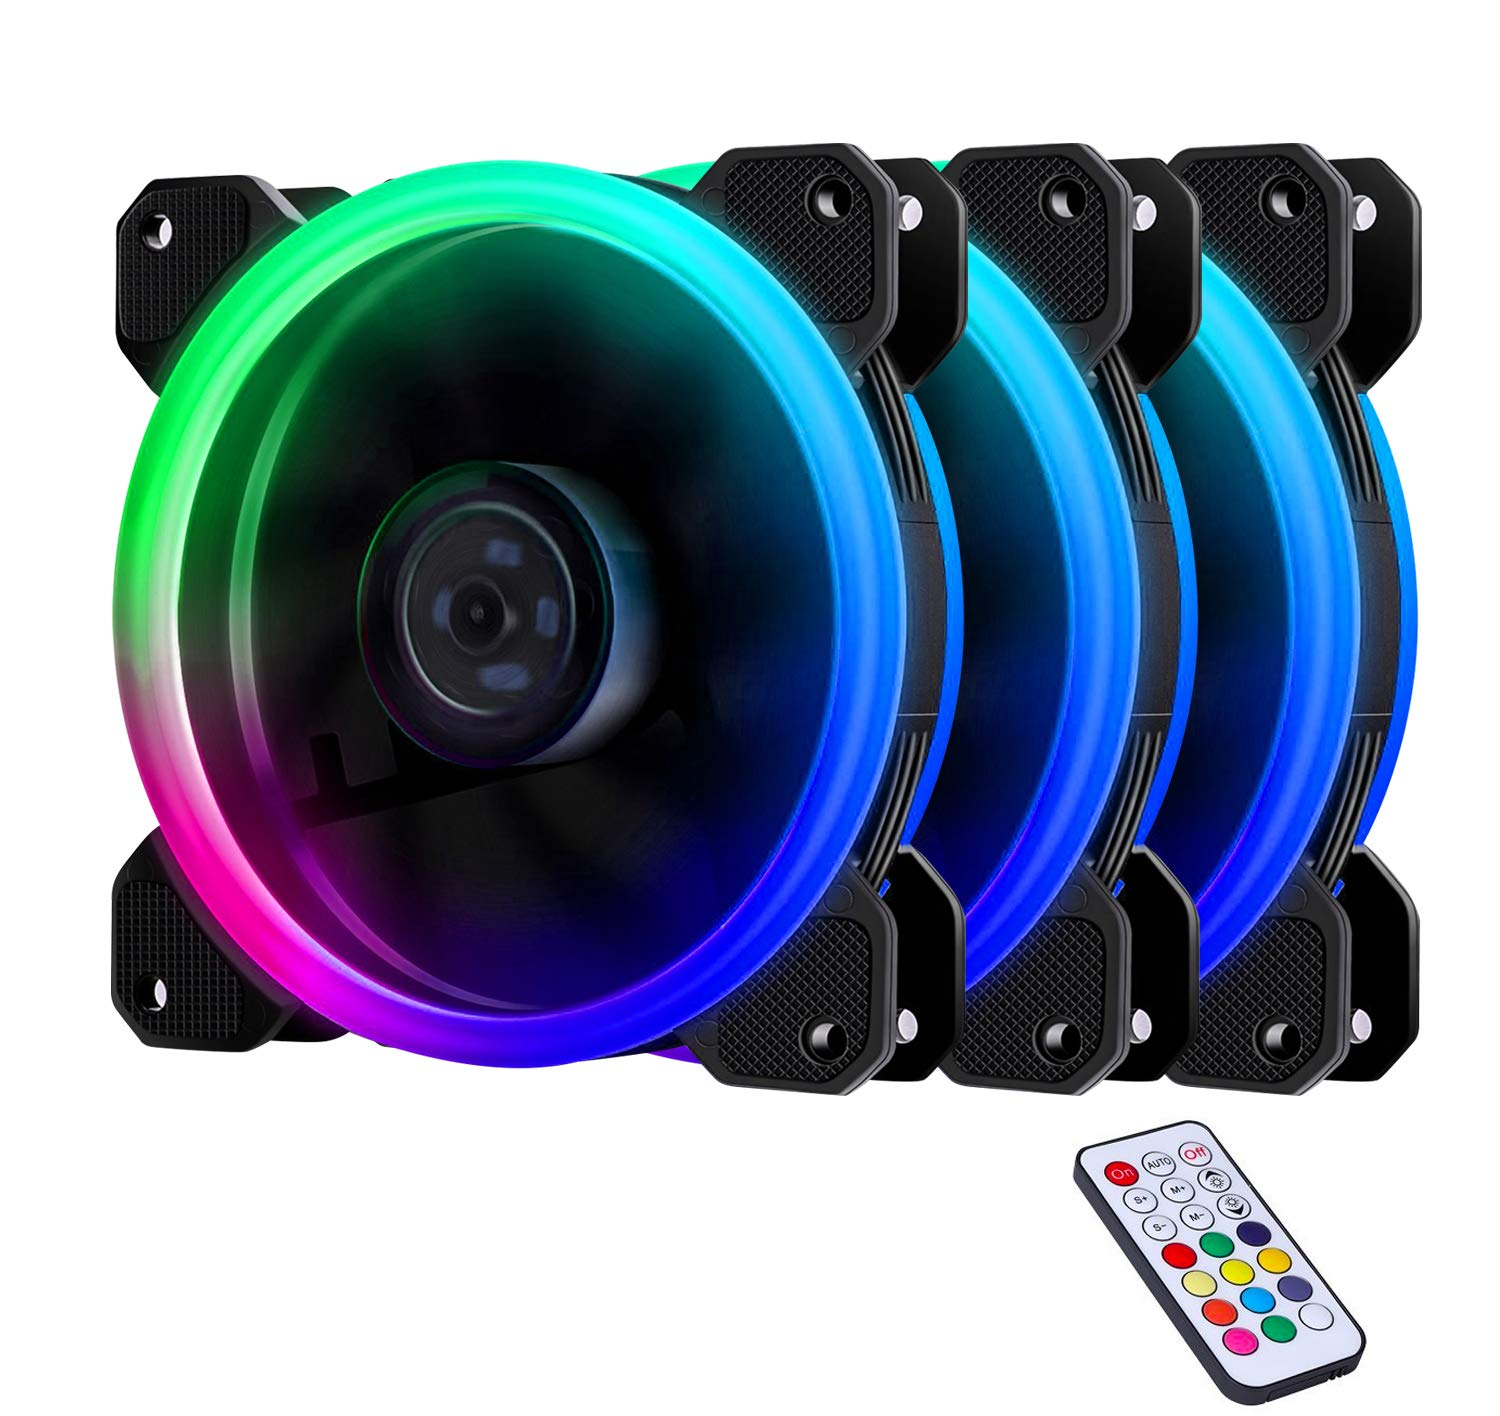 Ezdiy Fab 3 Pack Wireless Rgb Led 120mm Case Fanquiet Hydraulic Power Wiring Diagram Edition High Airflow Adjustable Color Fan For Pc Cases Cpu Coolersradiators